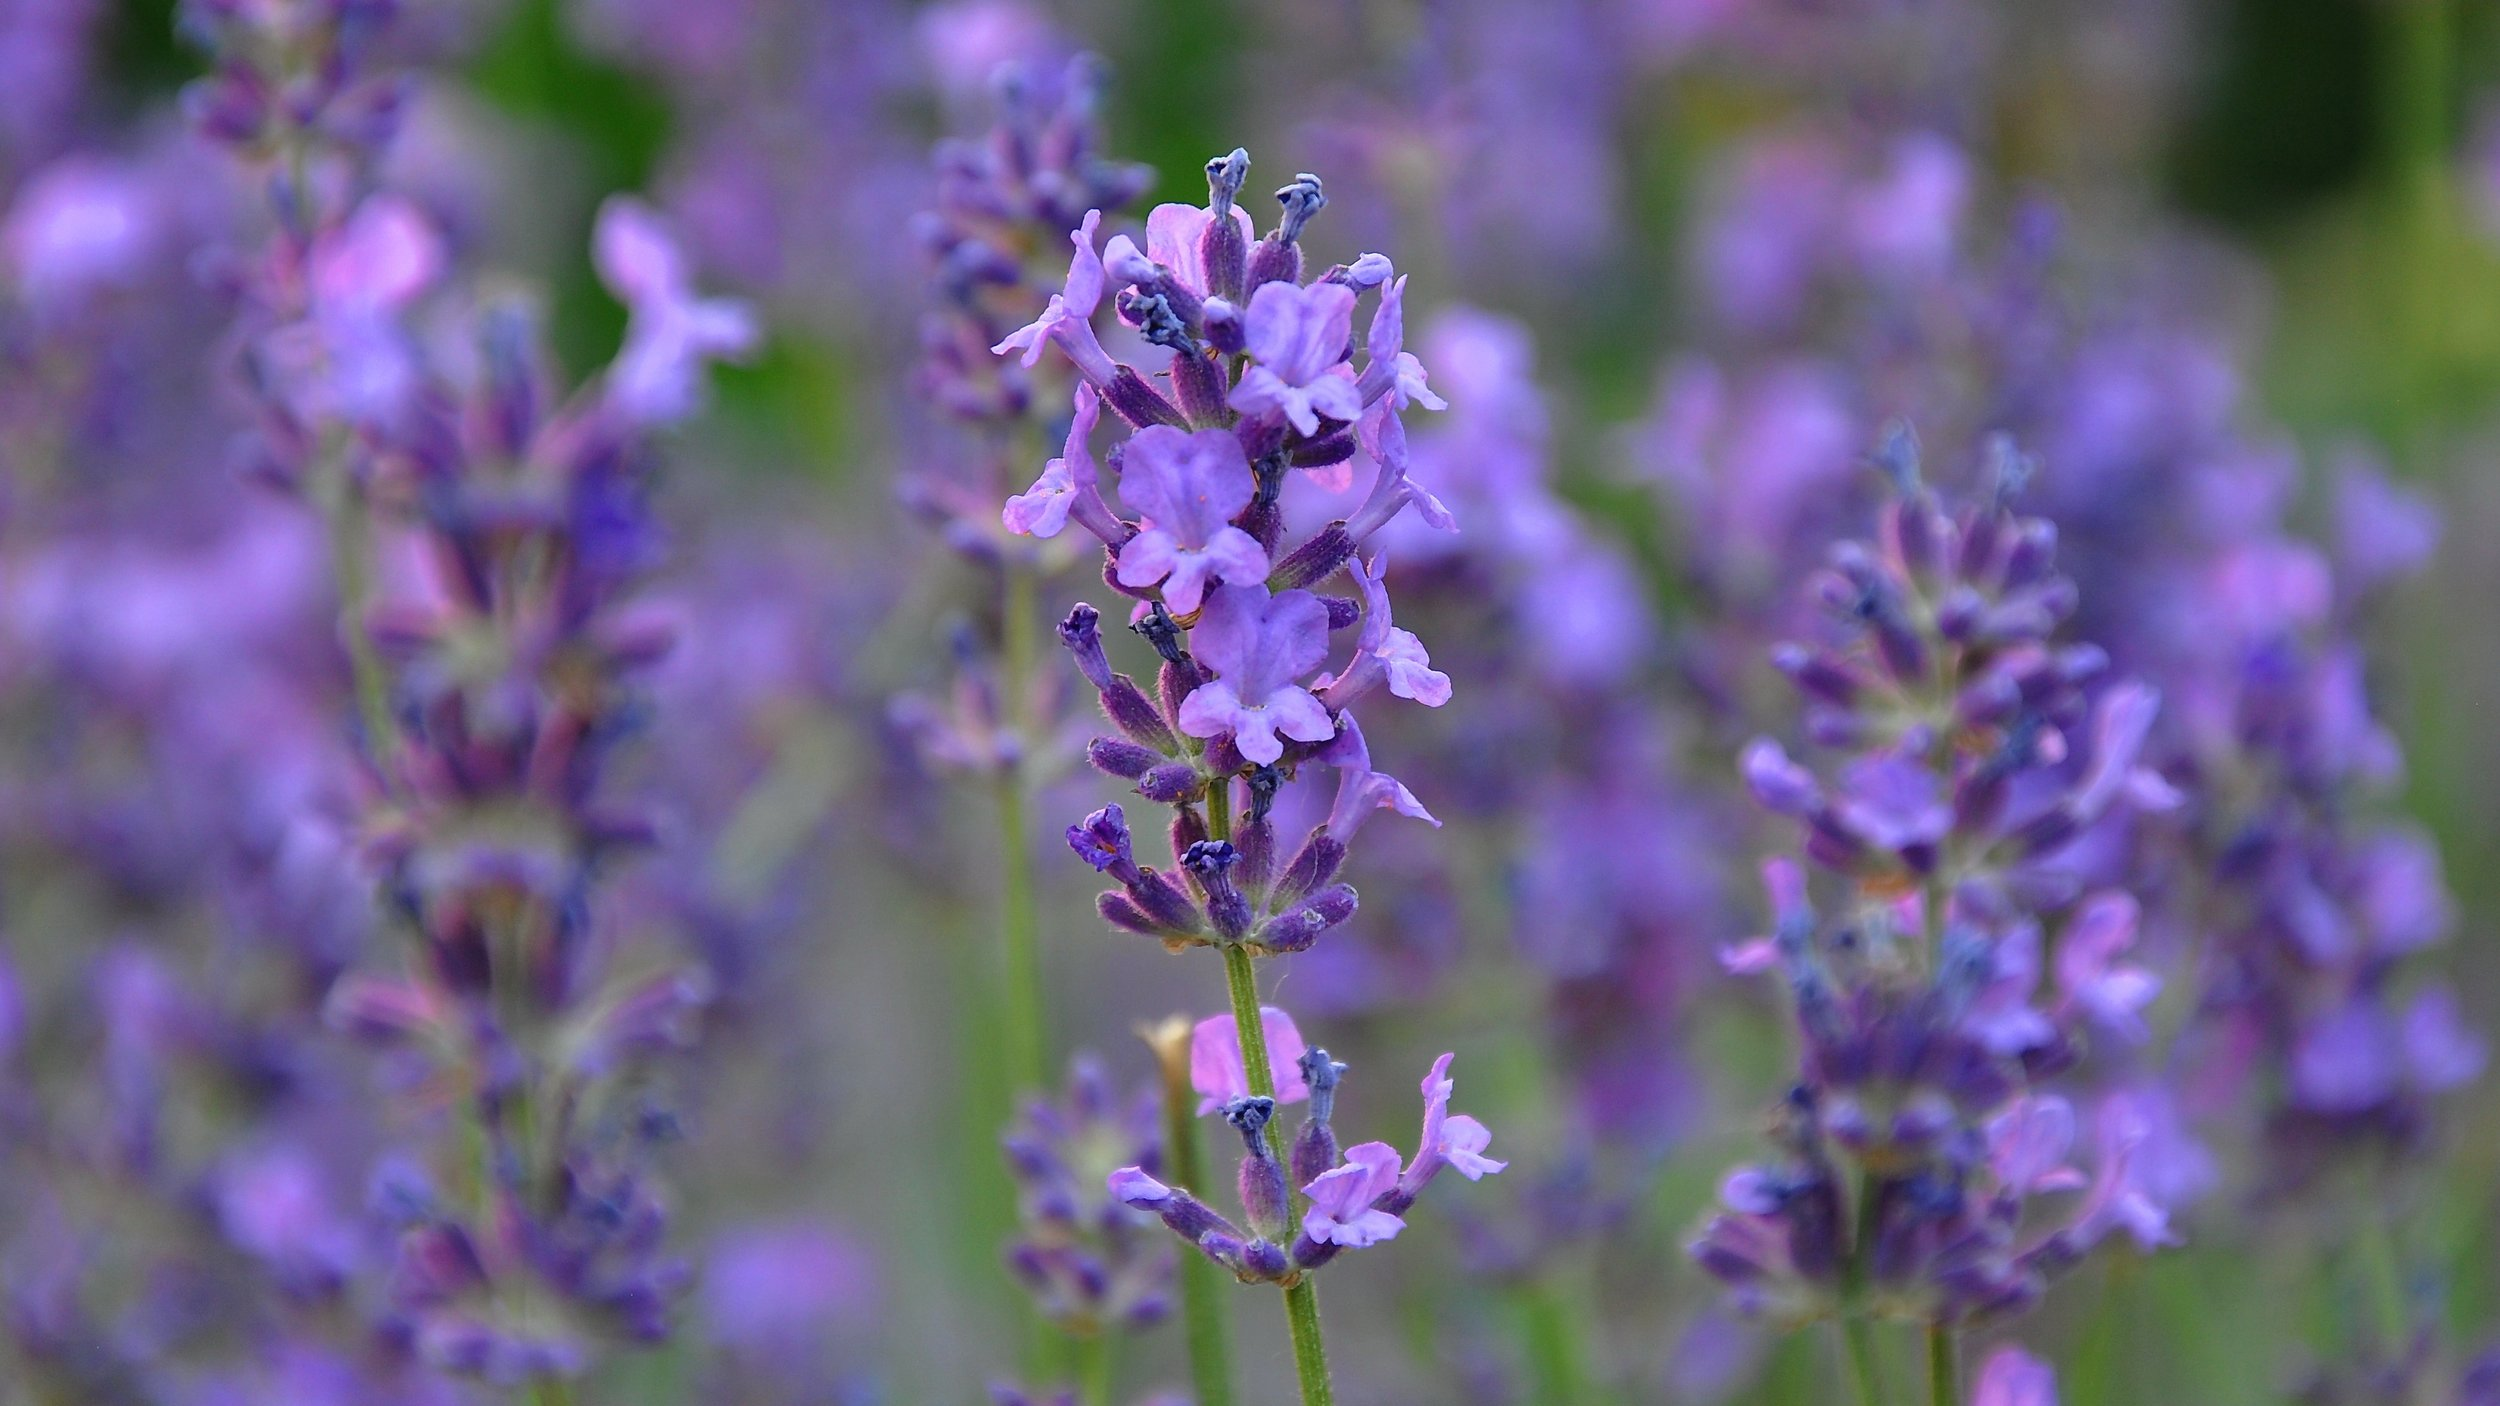 LAVENDER OIL  is one of the most well-known essential oils in aromatherapy, benefits include its ability to Reduces anxiety and stress, migraine and headache relief, improves sleep apnea, disinfect the scalp and skin, Effective treatment for rosacea, acne scars, eczema, psoriasis, alopecia, seborrheic and atopic dermatitis. helps with lice, eggs, and nits.